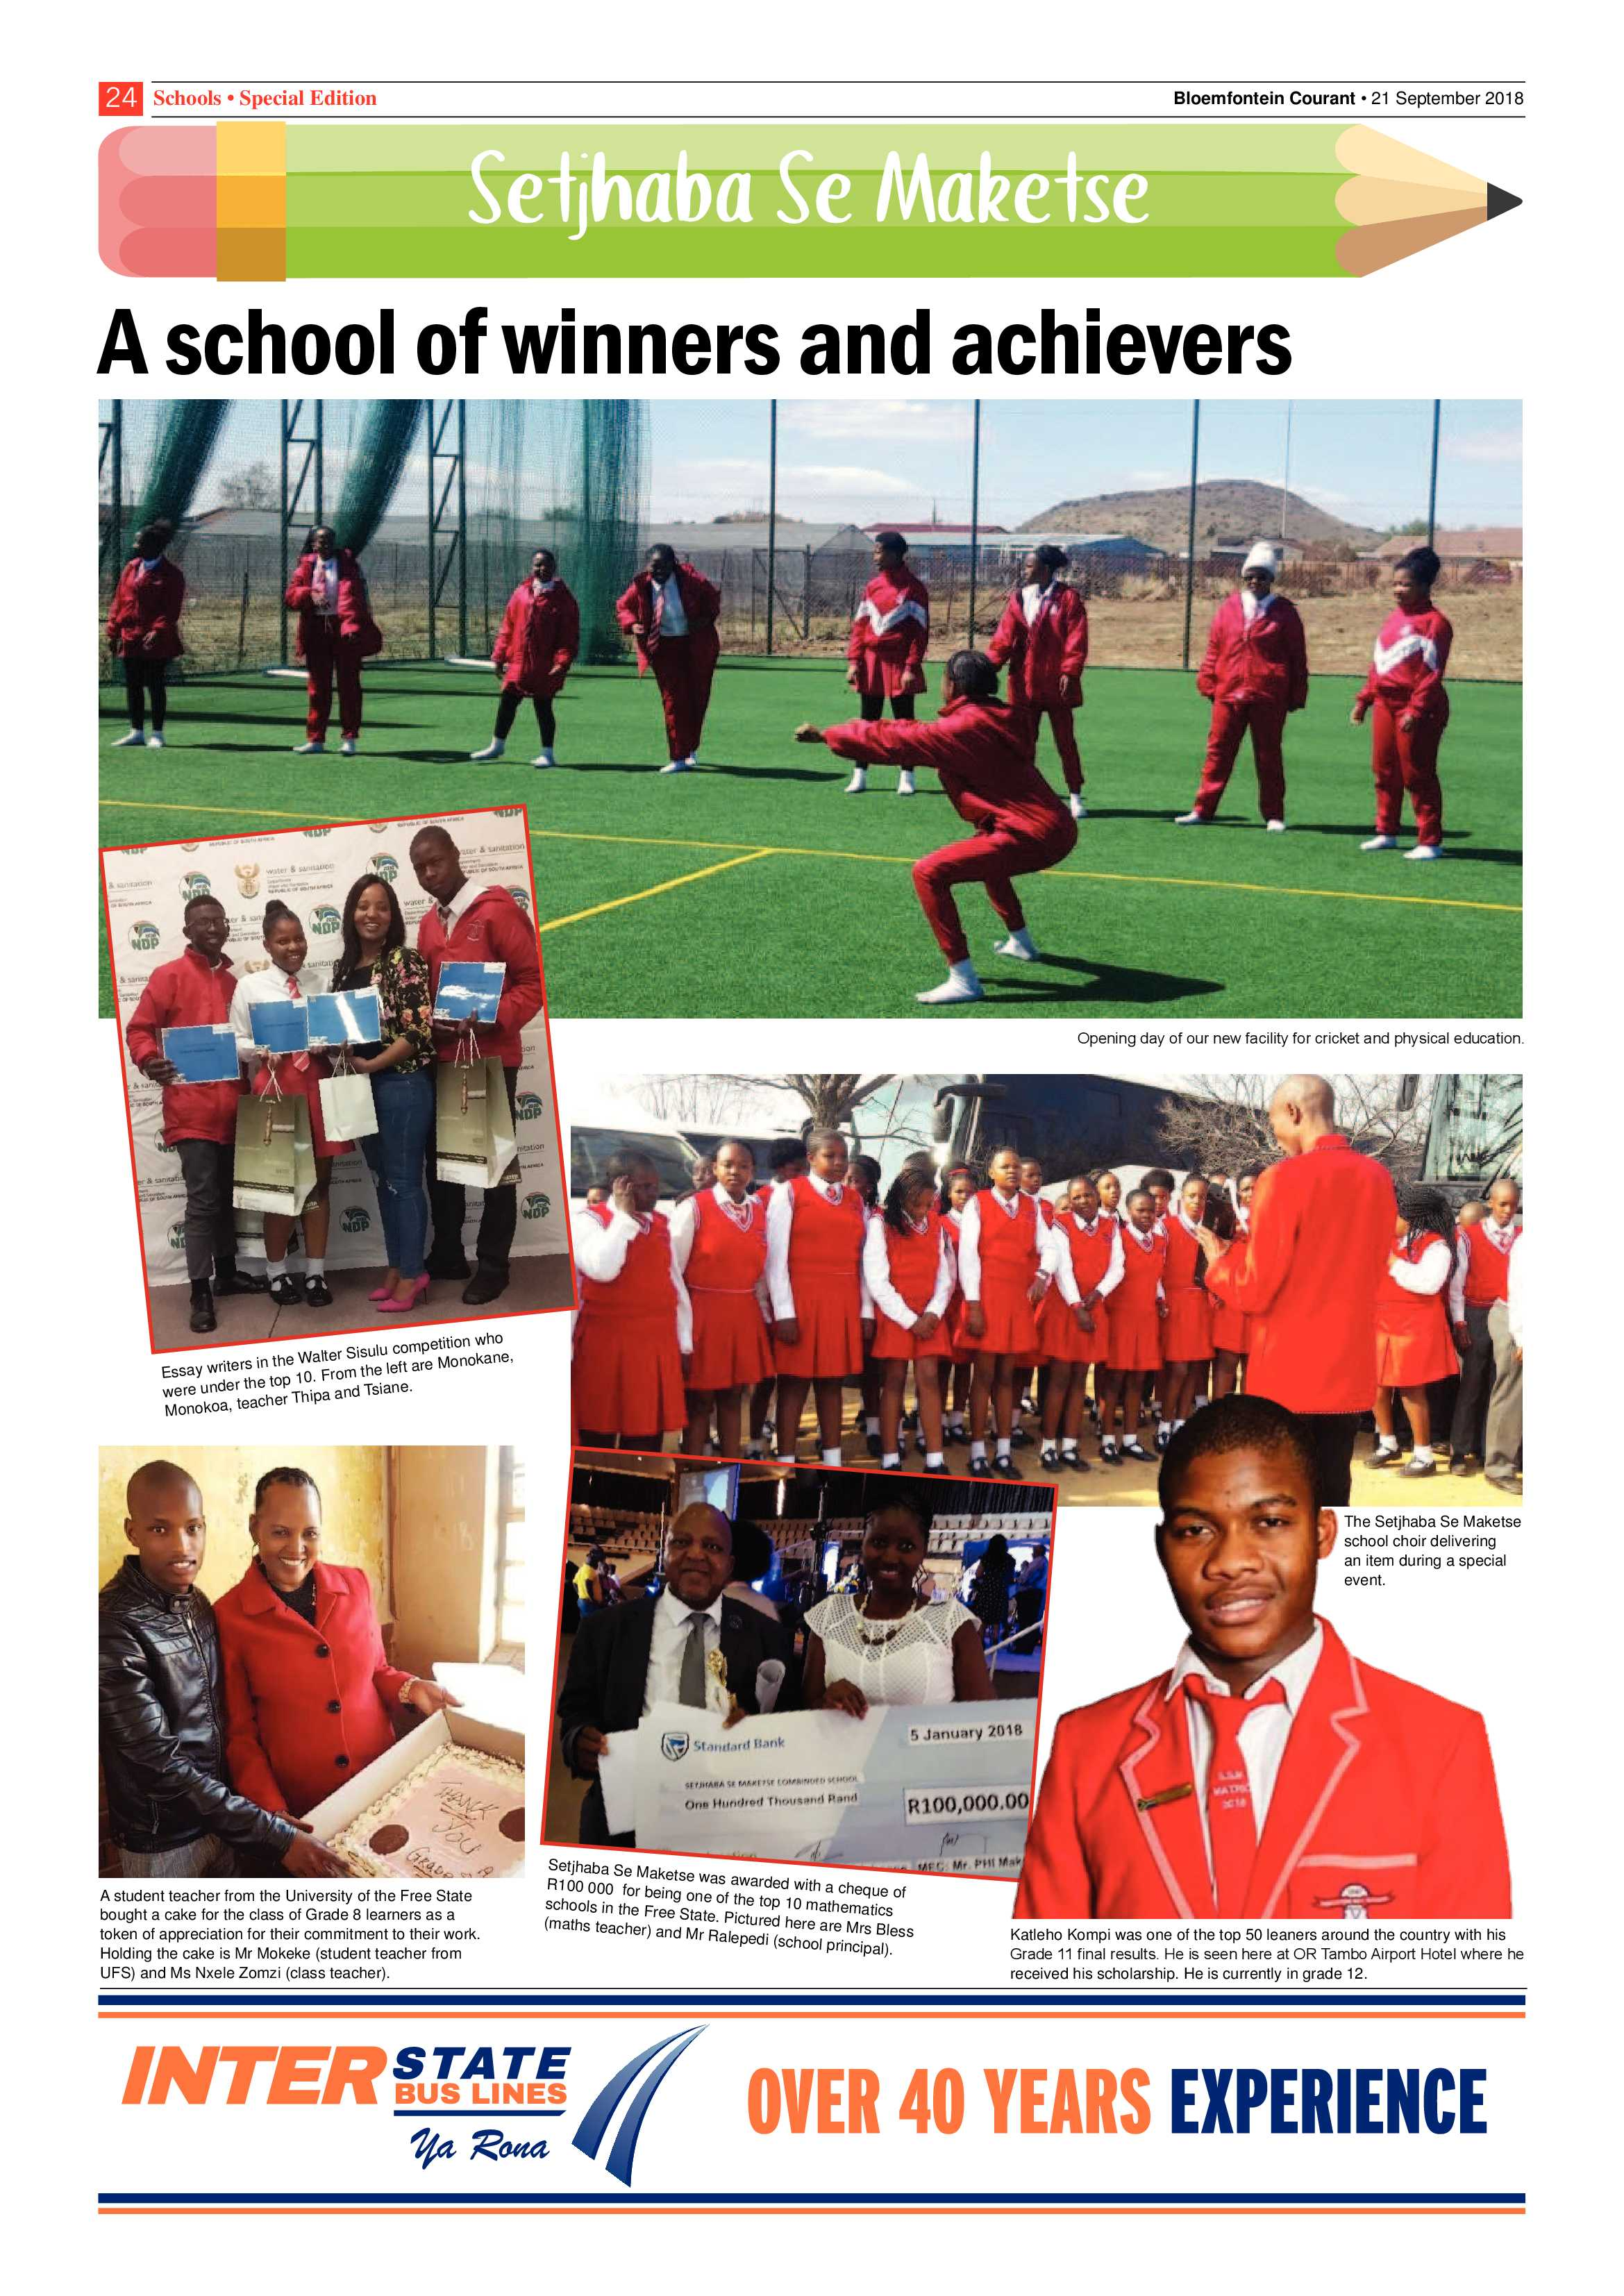 courant-schools-edition-20-september-2018-epapers-page-22